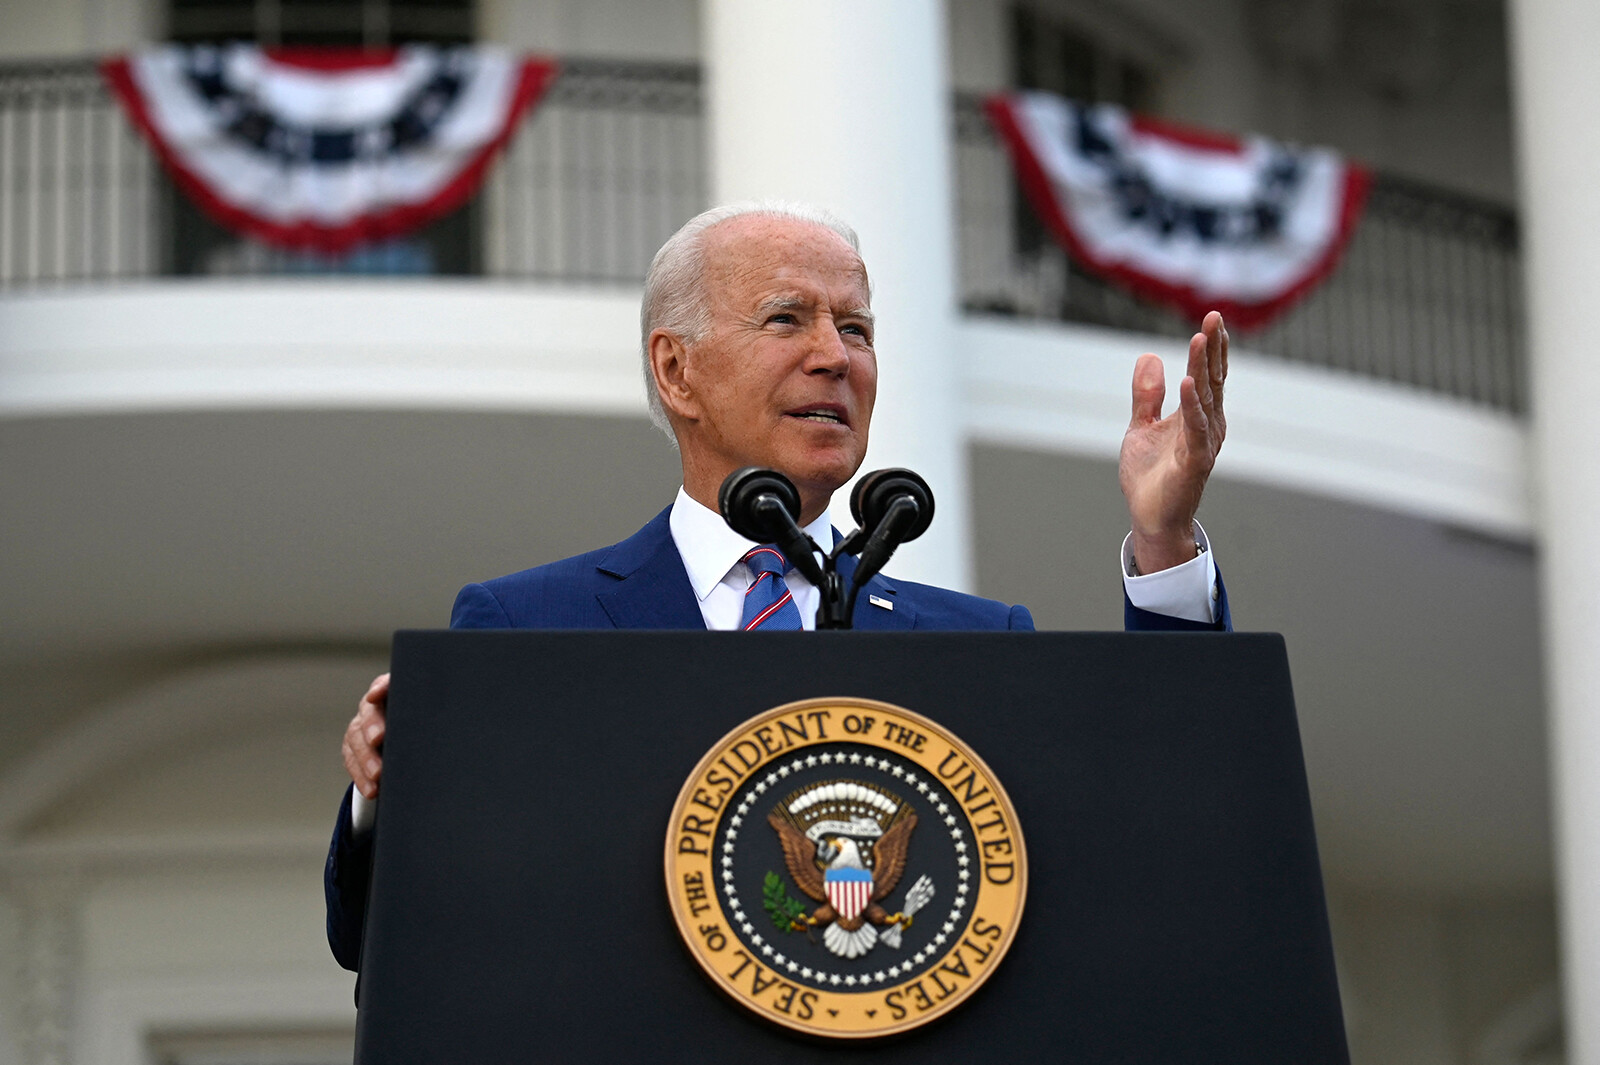 <i>Andrew Caballero-Reynolds/AFP/Getty Images</i><br/>President Joe Biden on July 21 raised the alarm about conspiracy theories flourishing in the US and dividing the nation